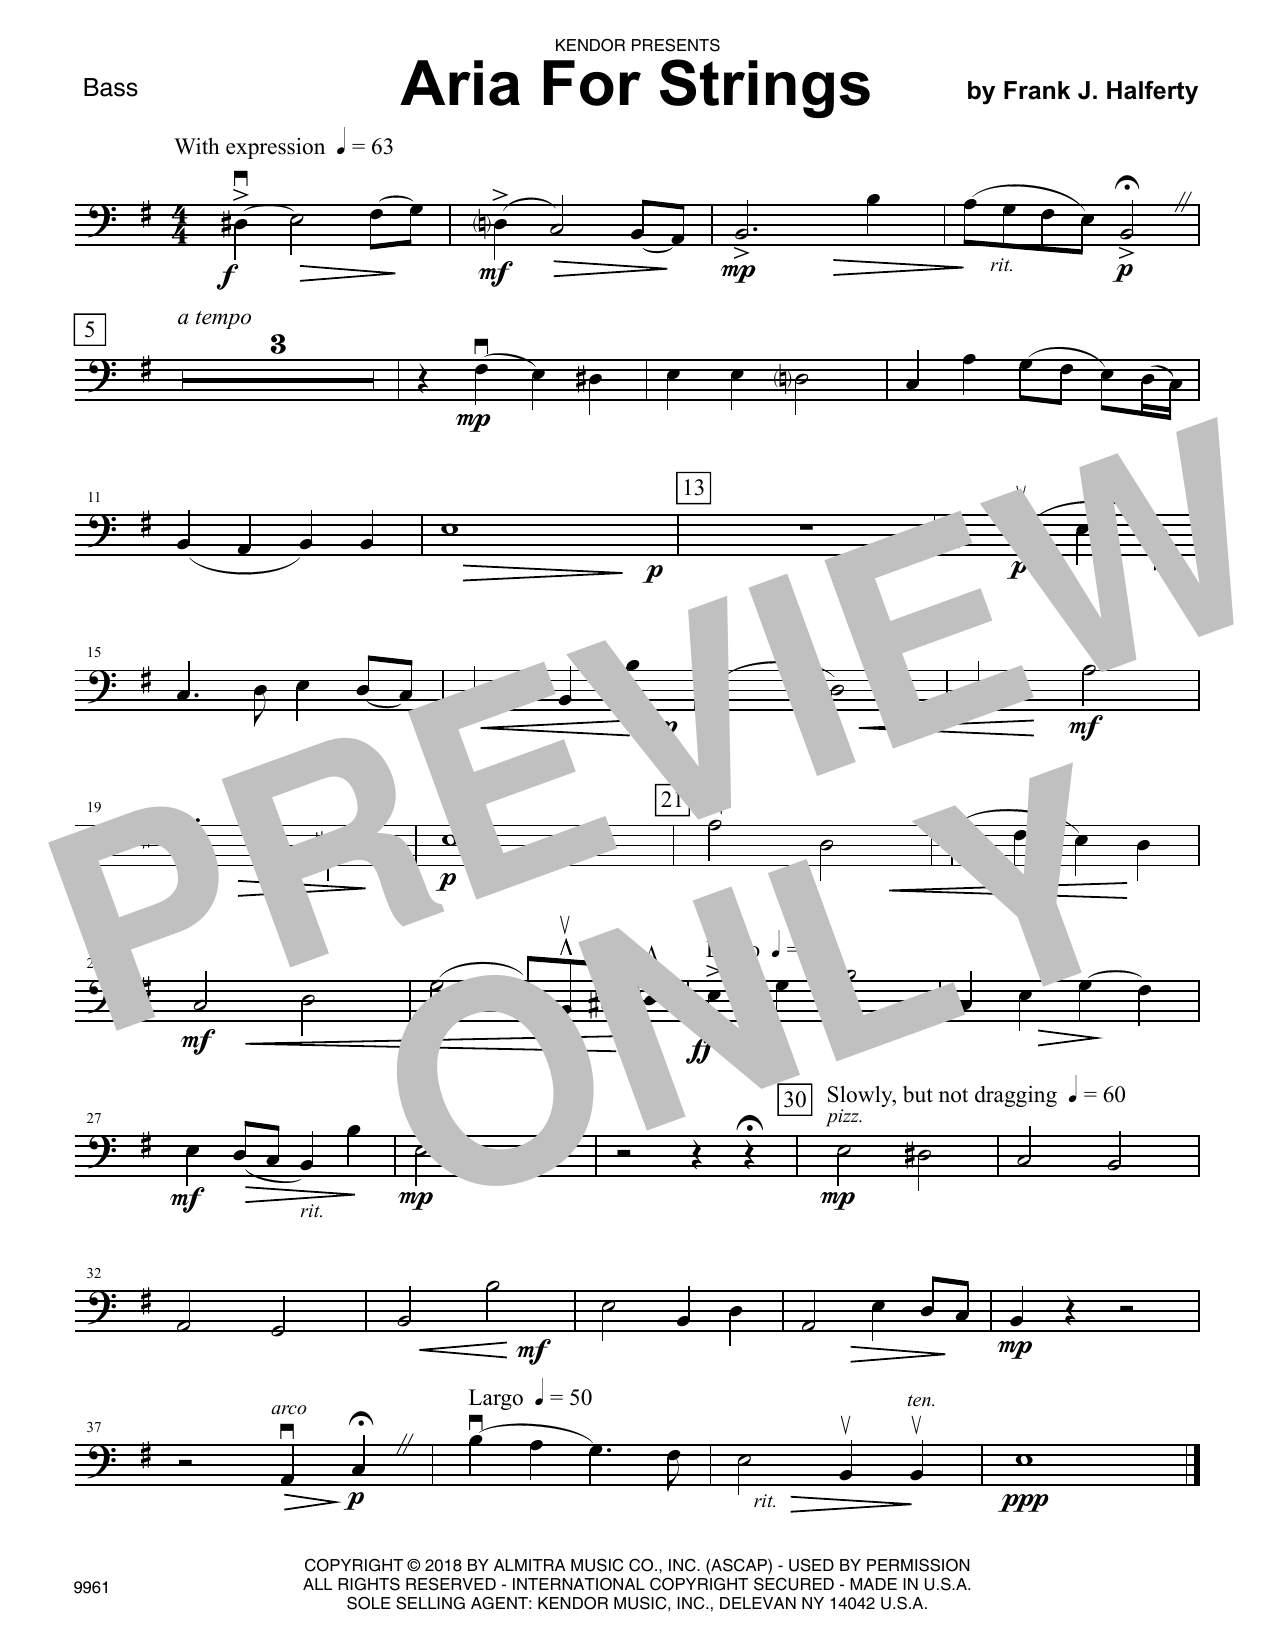 Frank J. Halferty Aria For Strings - Bass sheet music notes and chords. Download Printable PDF.